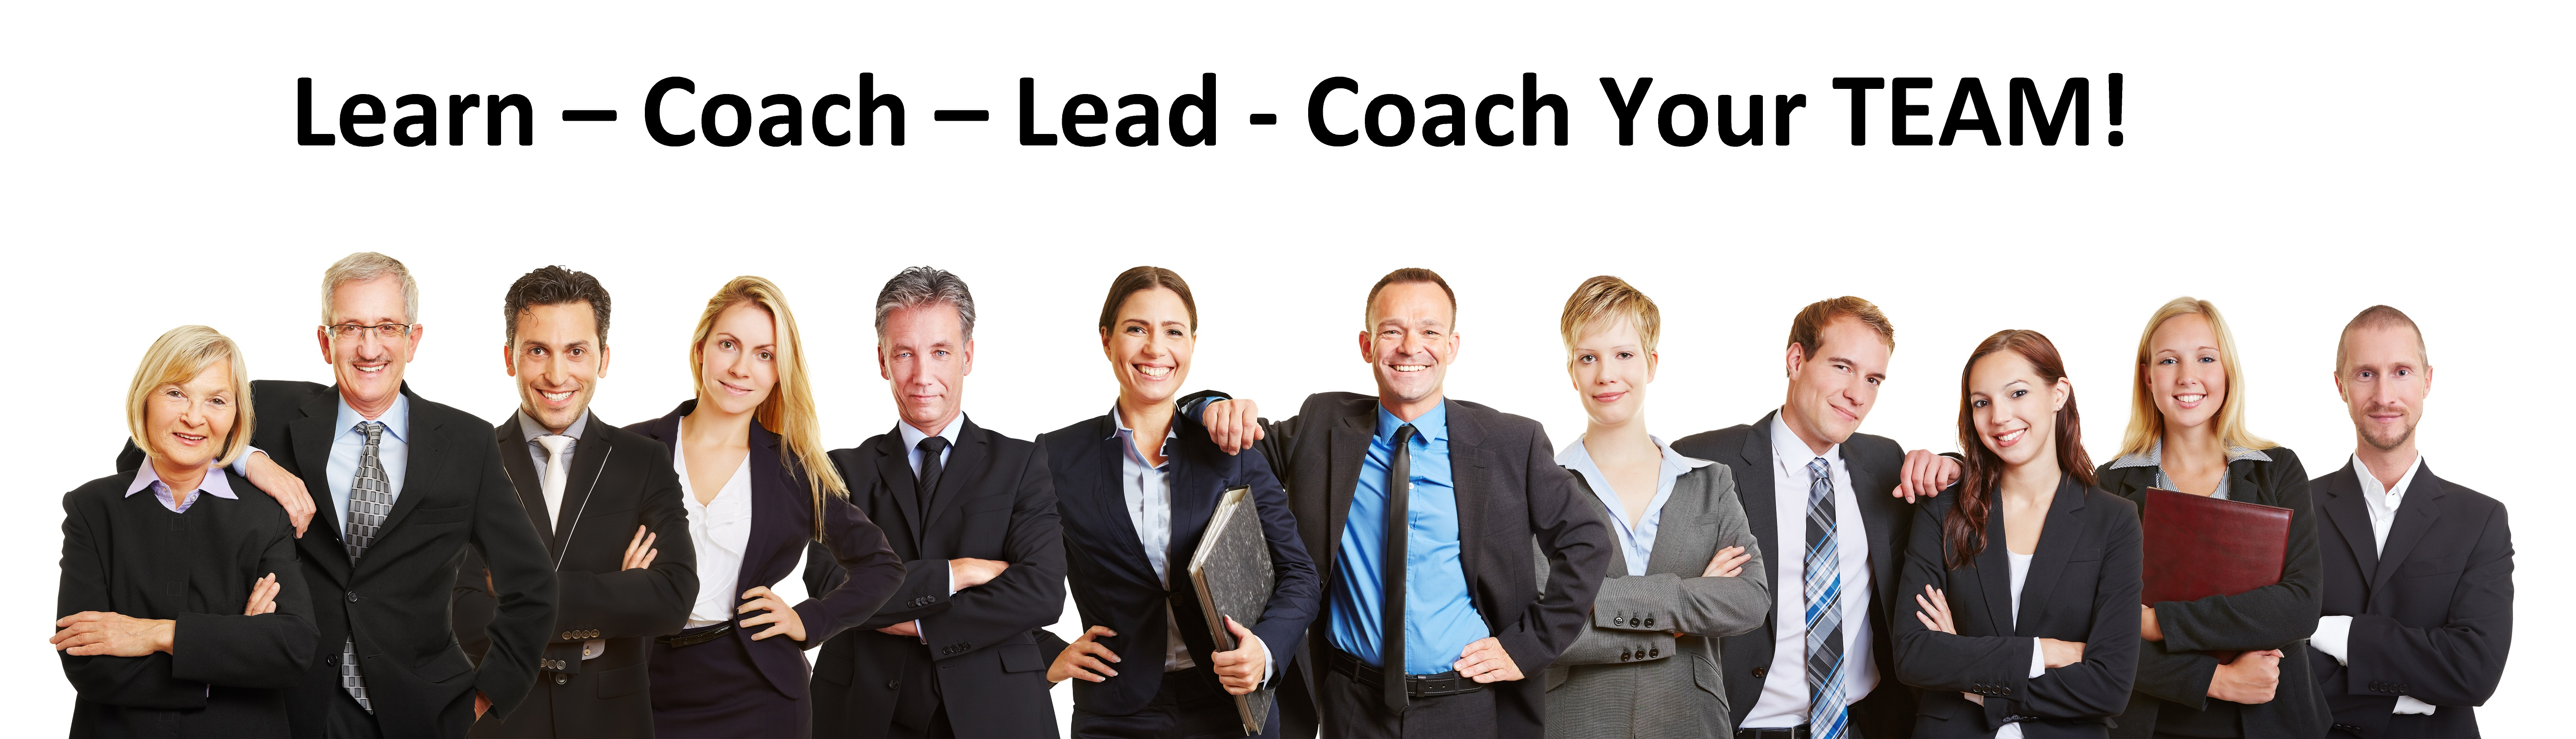 learn-coach-lead-team